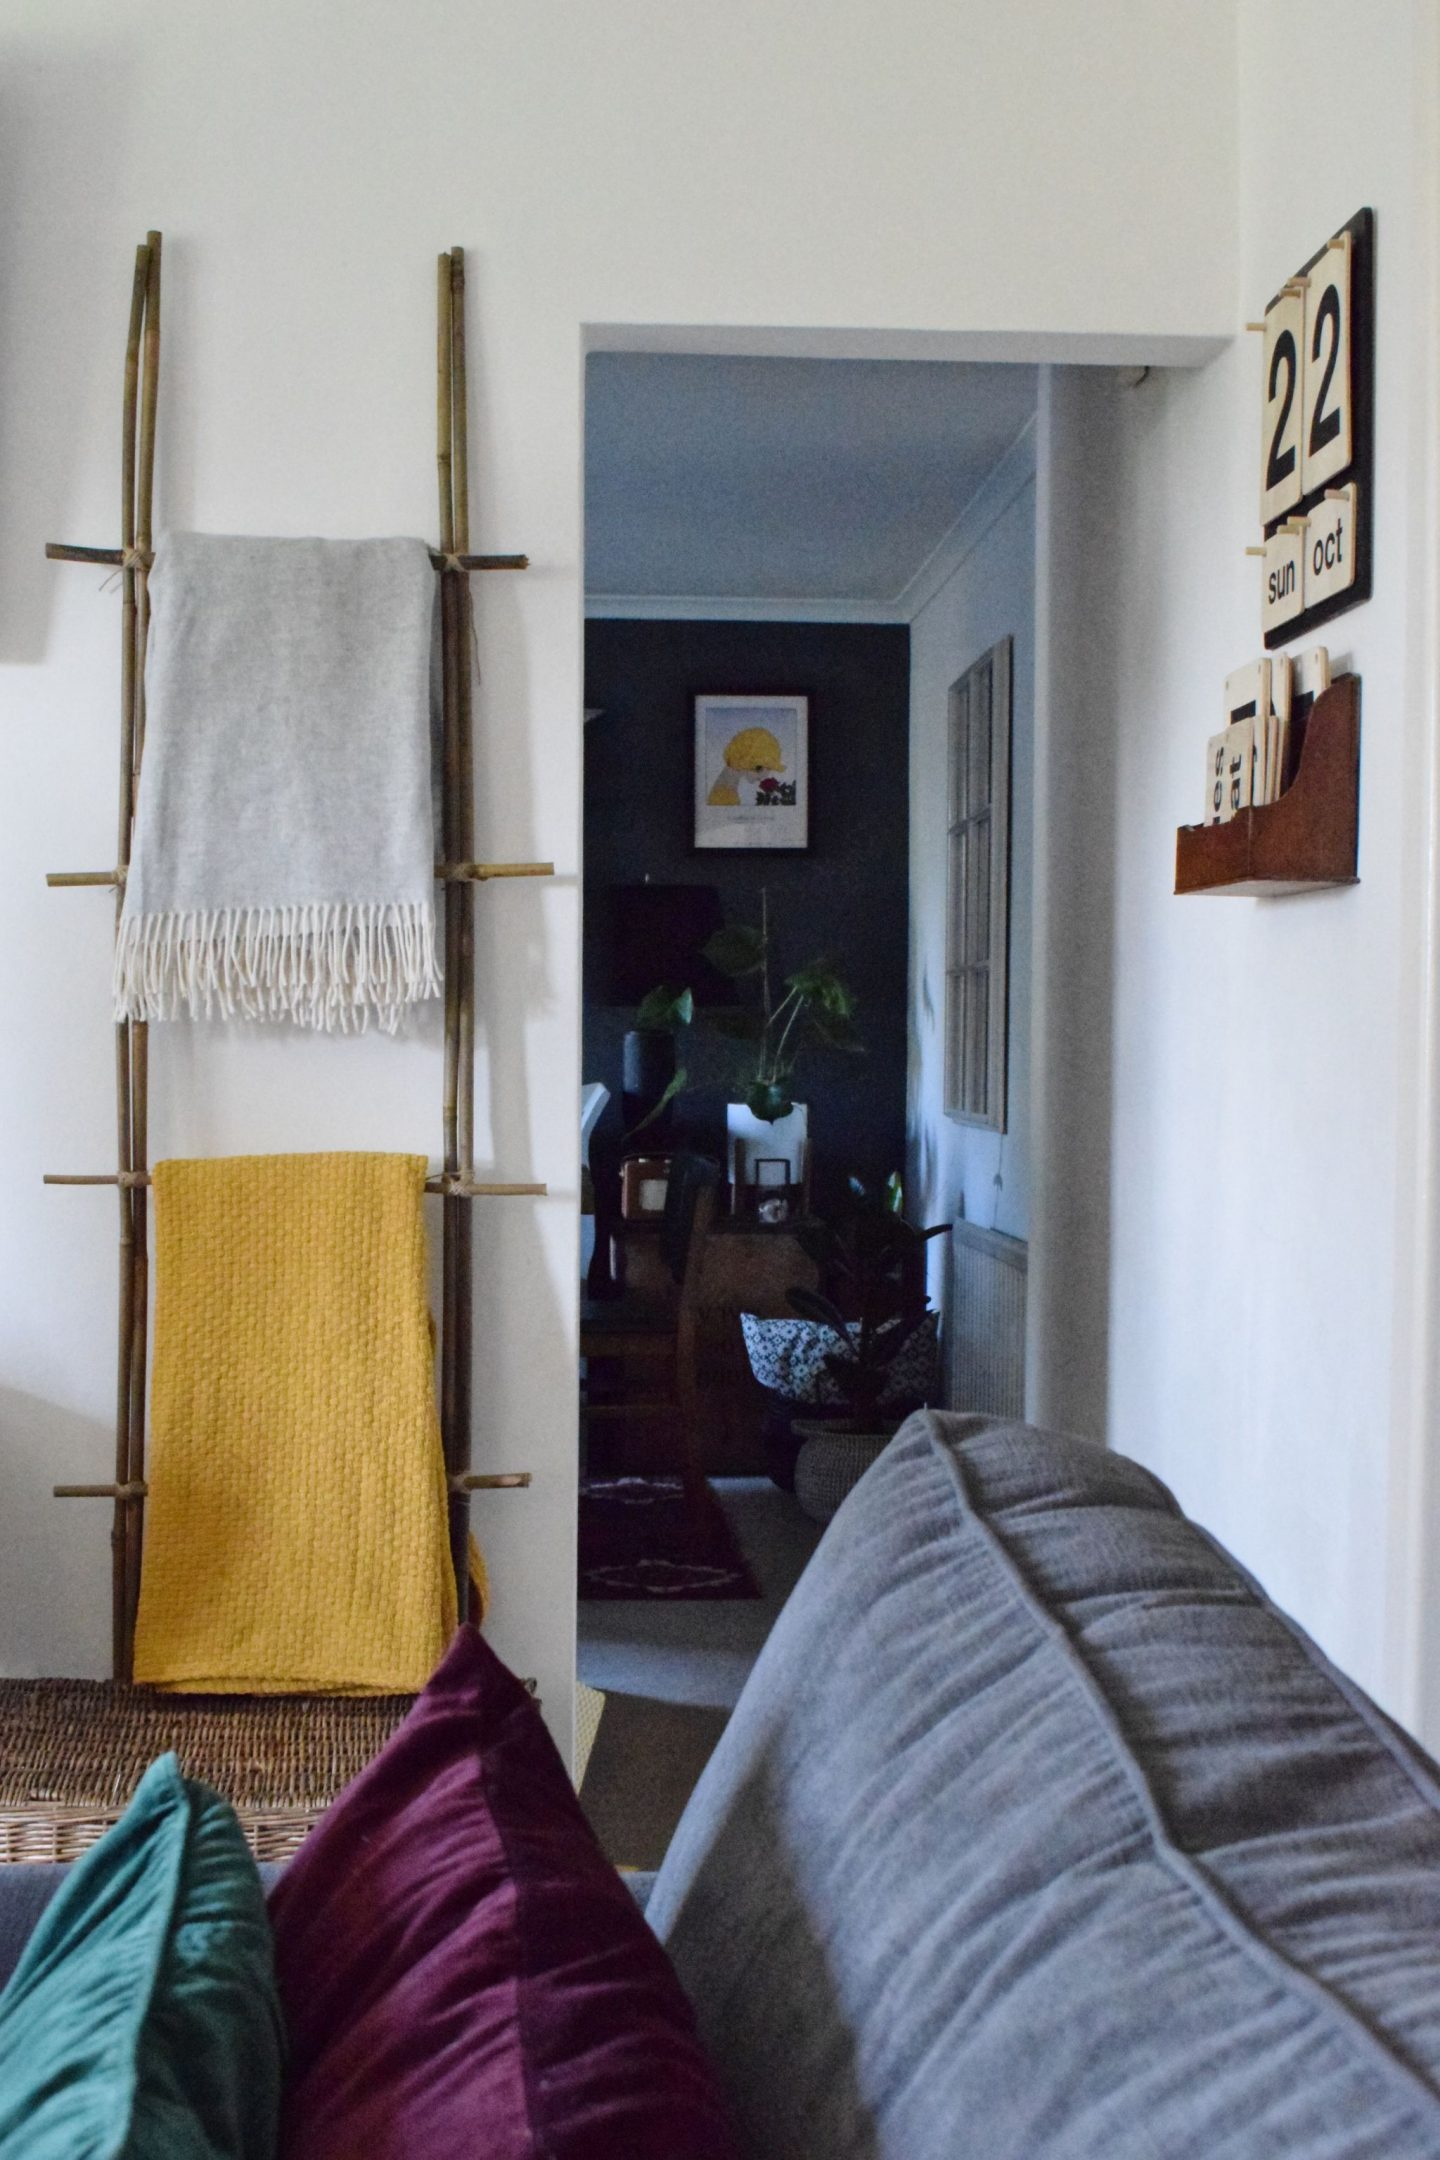 How to make a blanket ladder for five pounds…